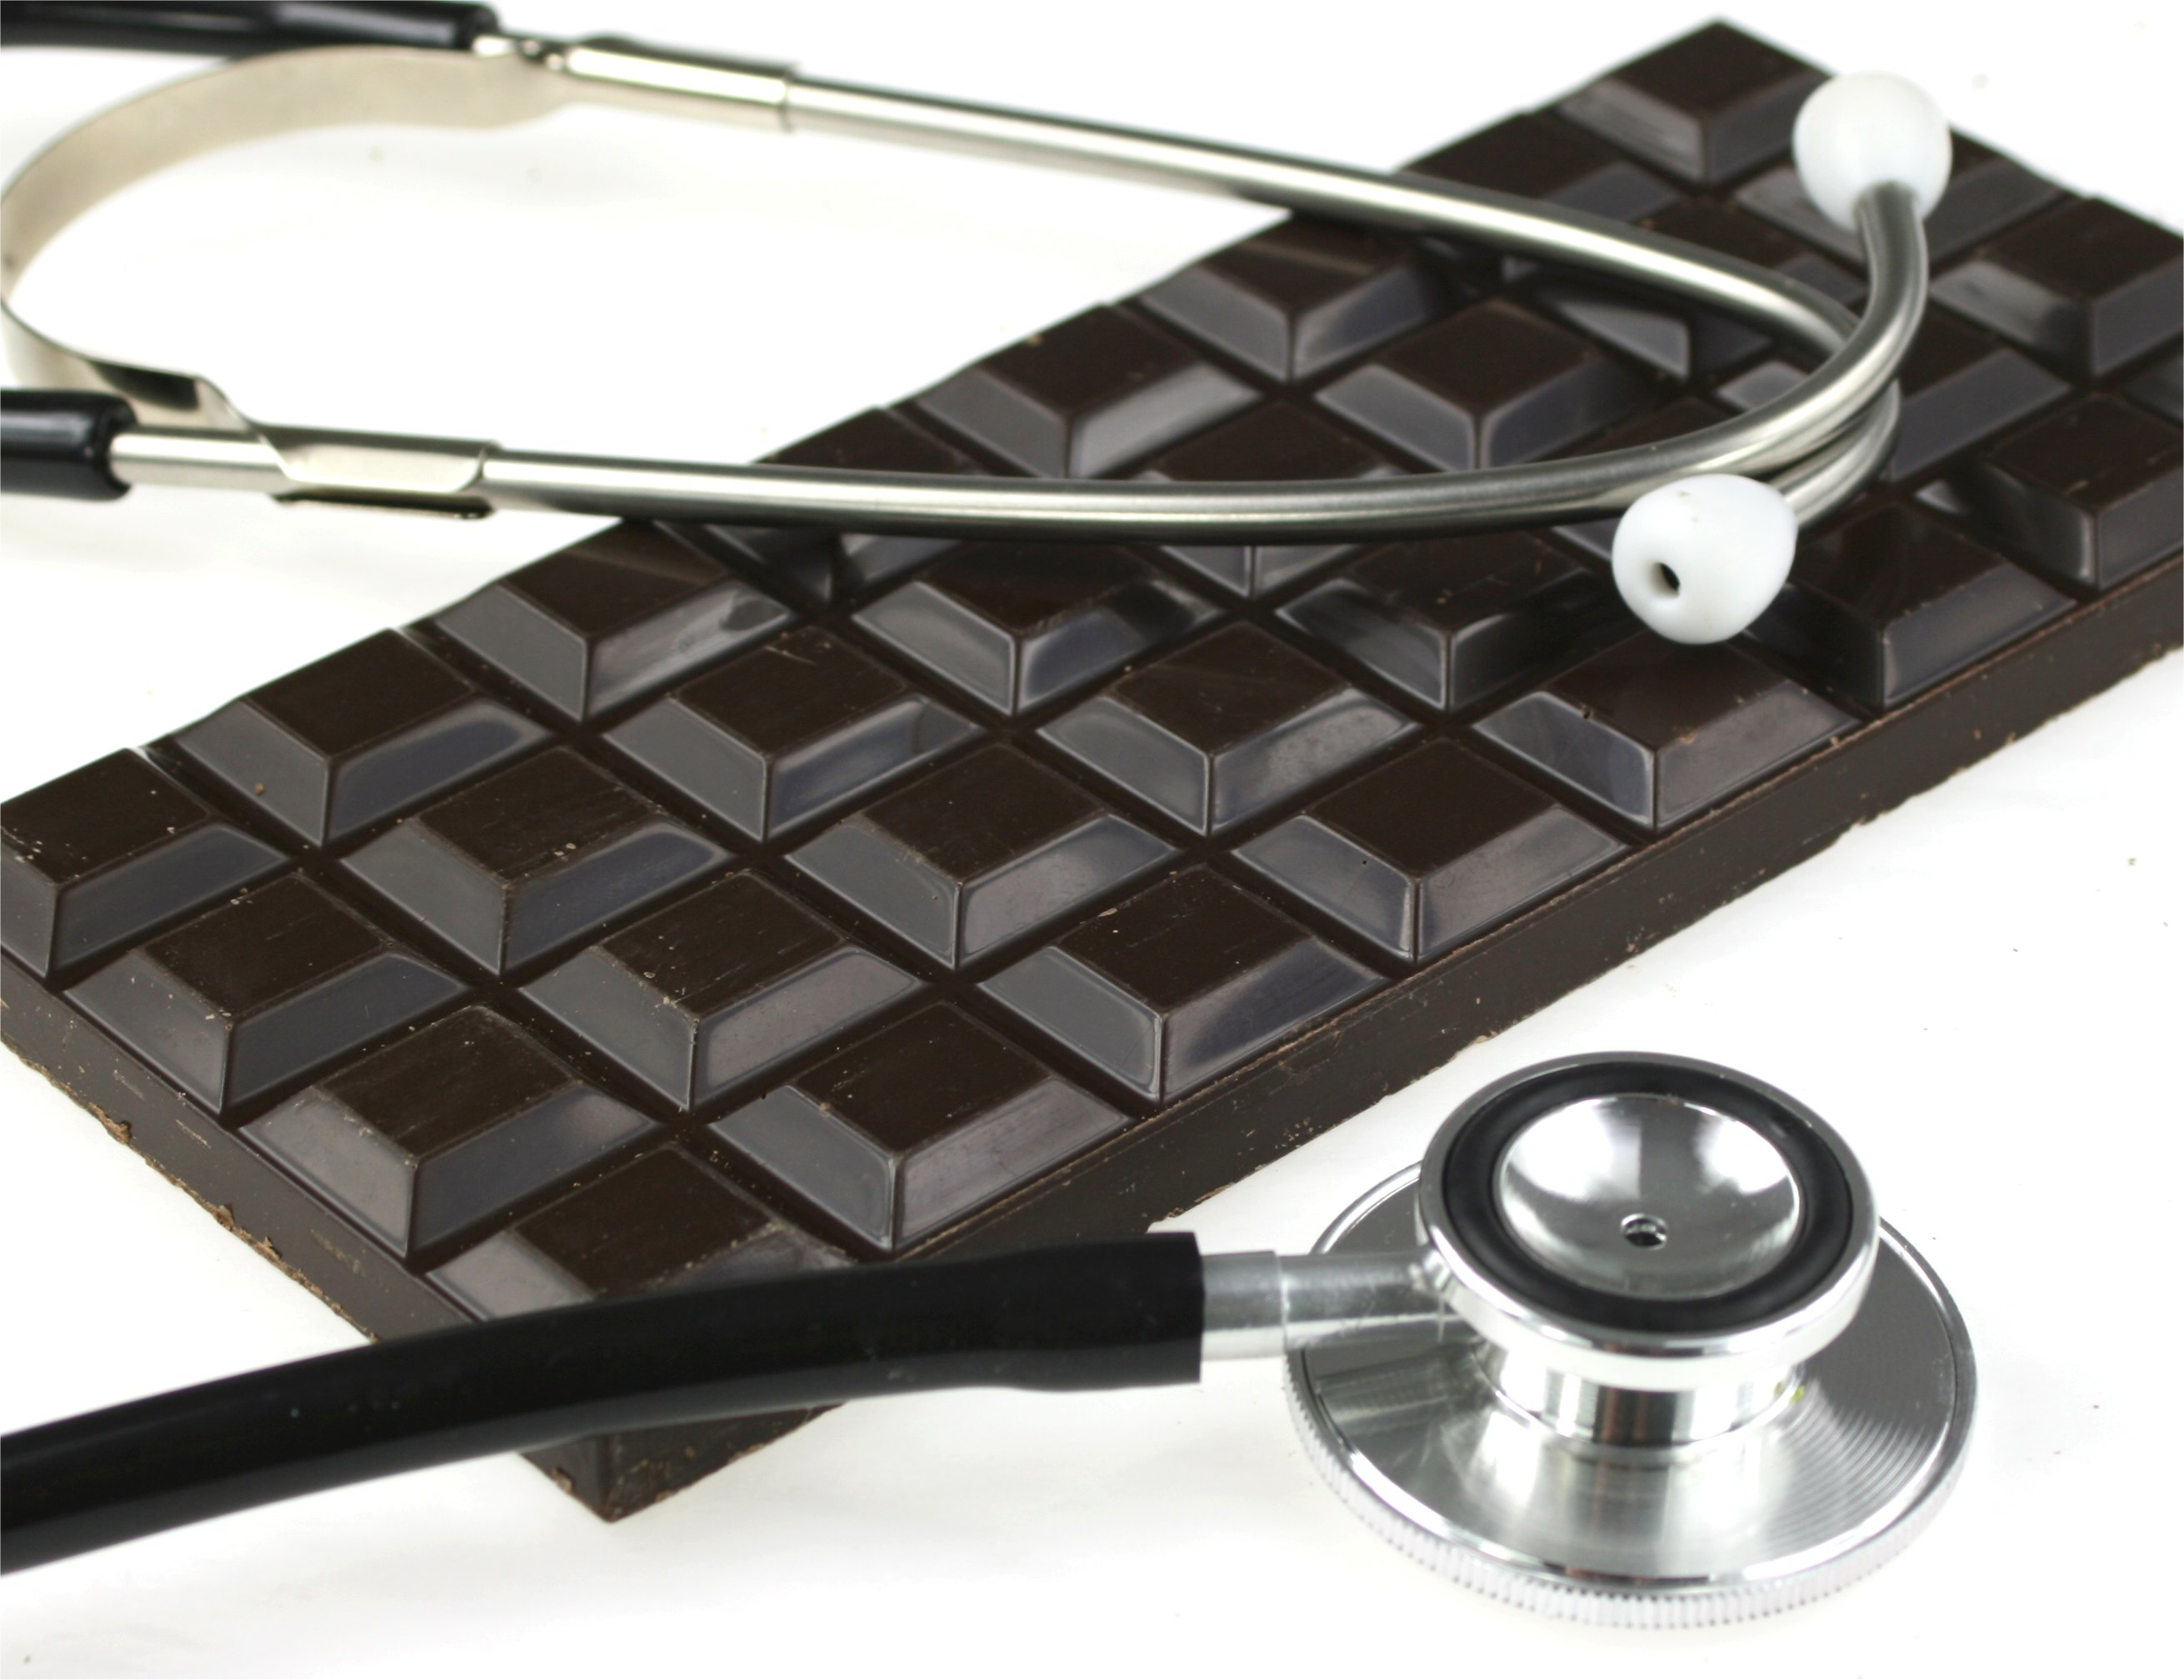 Chocolate Bar and Stethoscope